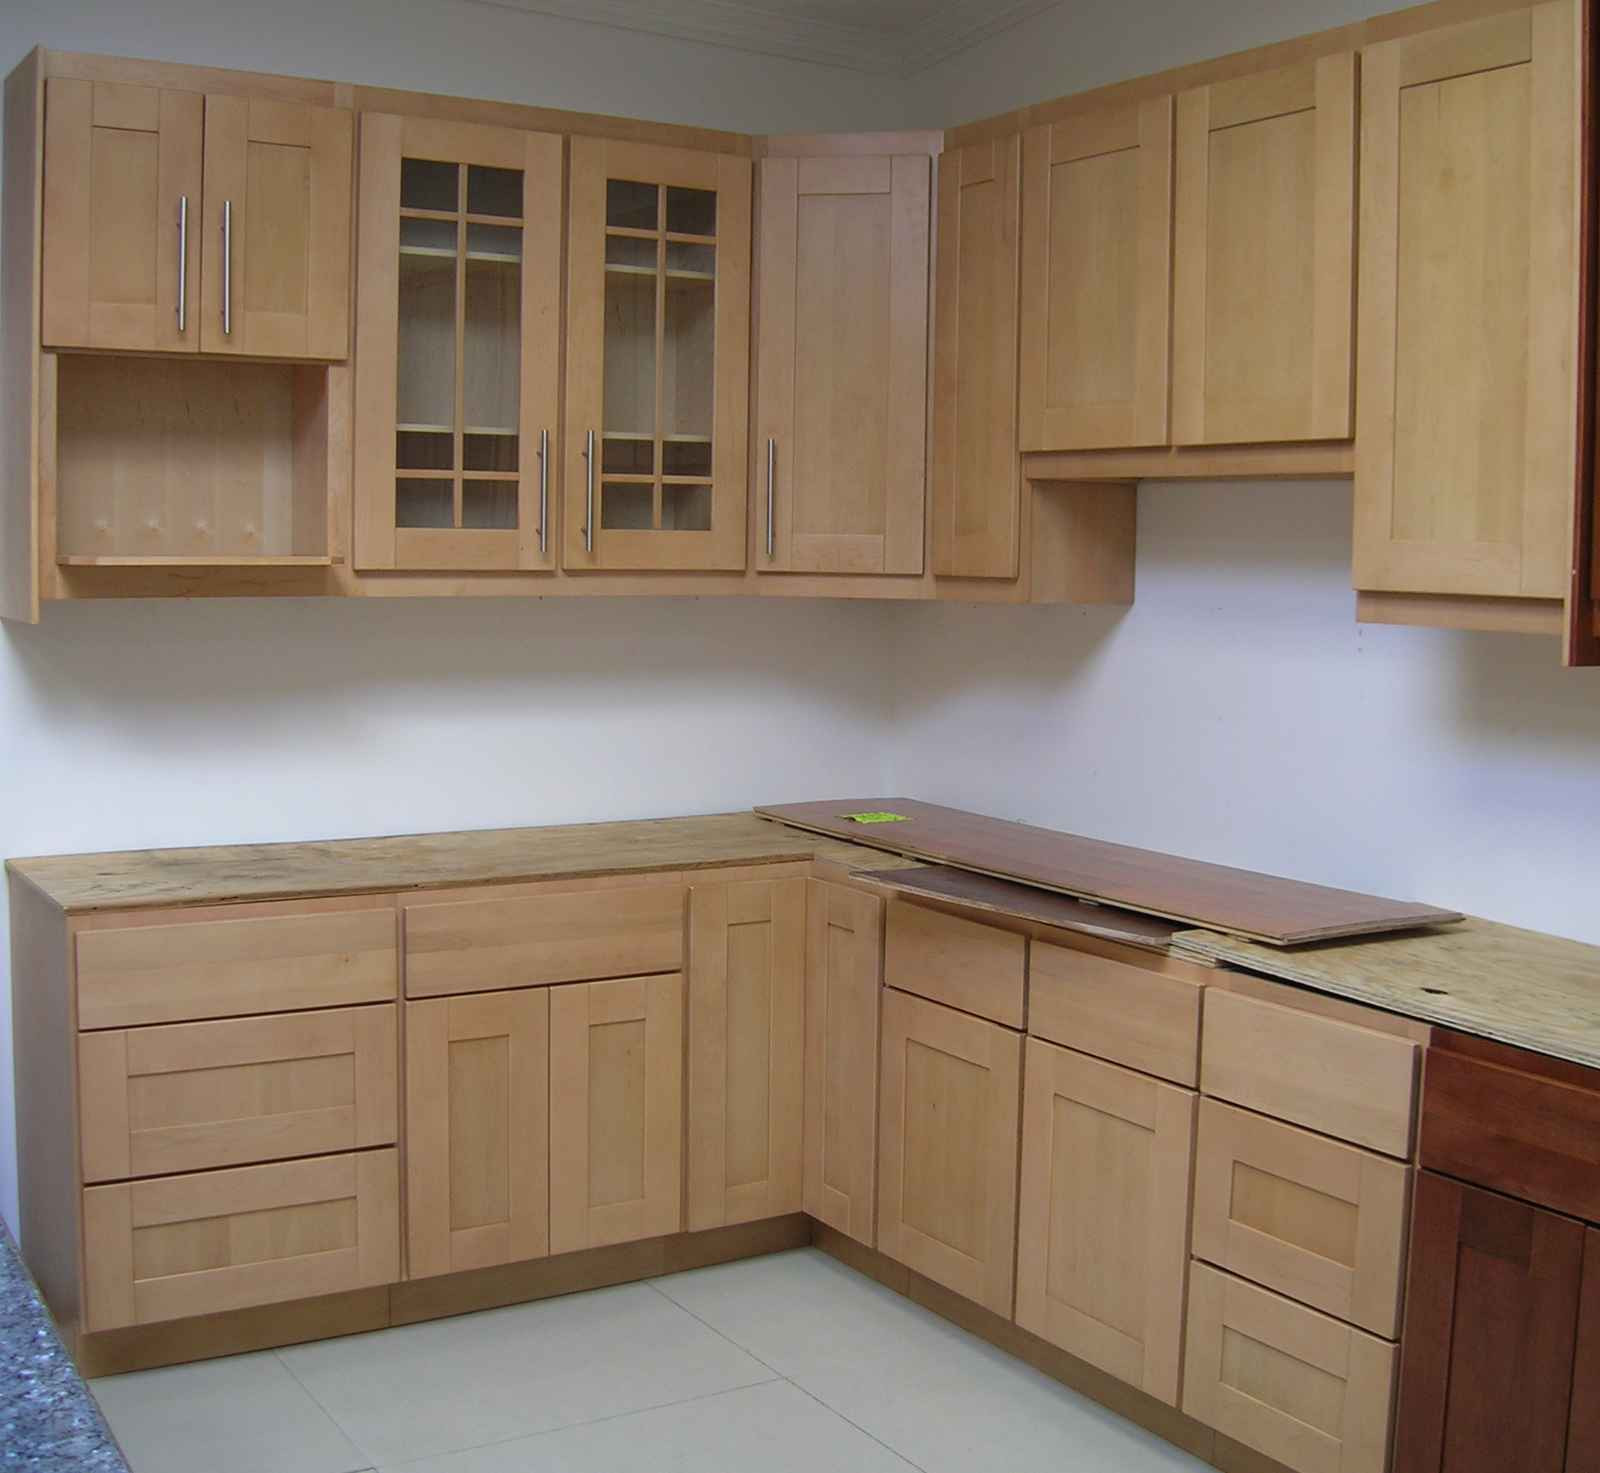 Best ideas about Discount Kitchen Cabinets . Save or Pin Cheap Kitchen Design Now.